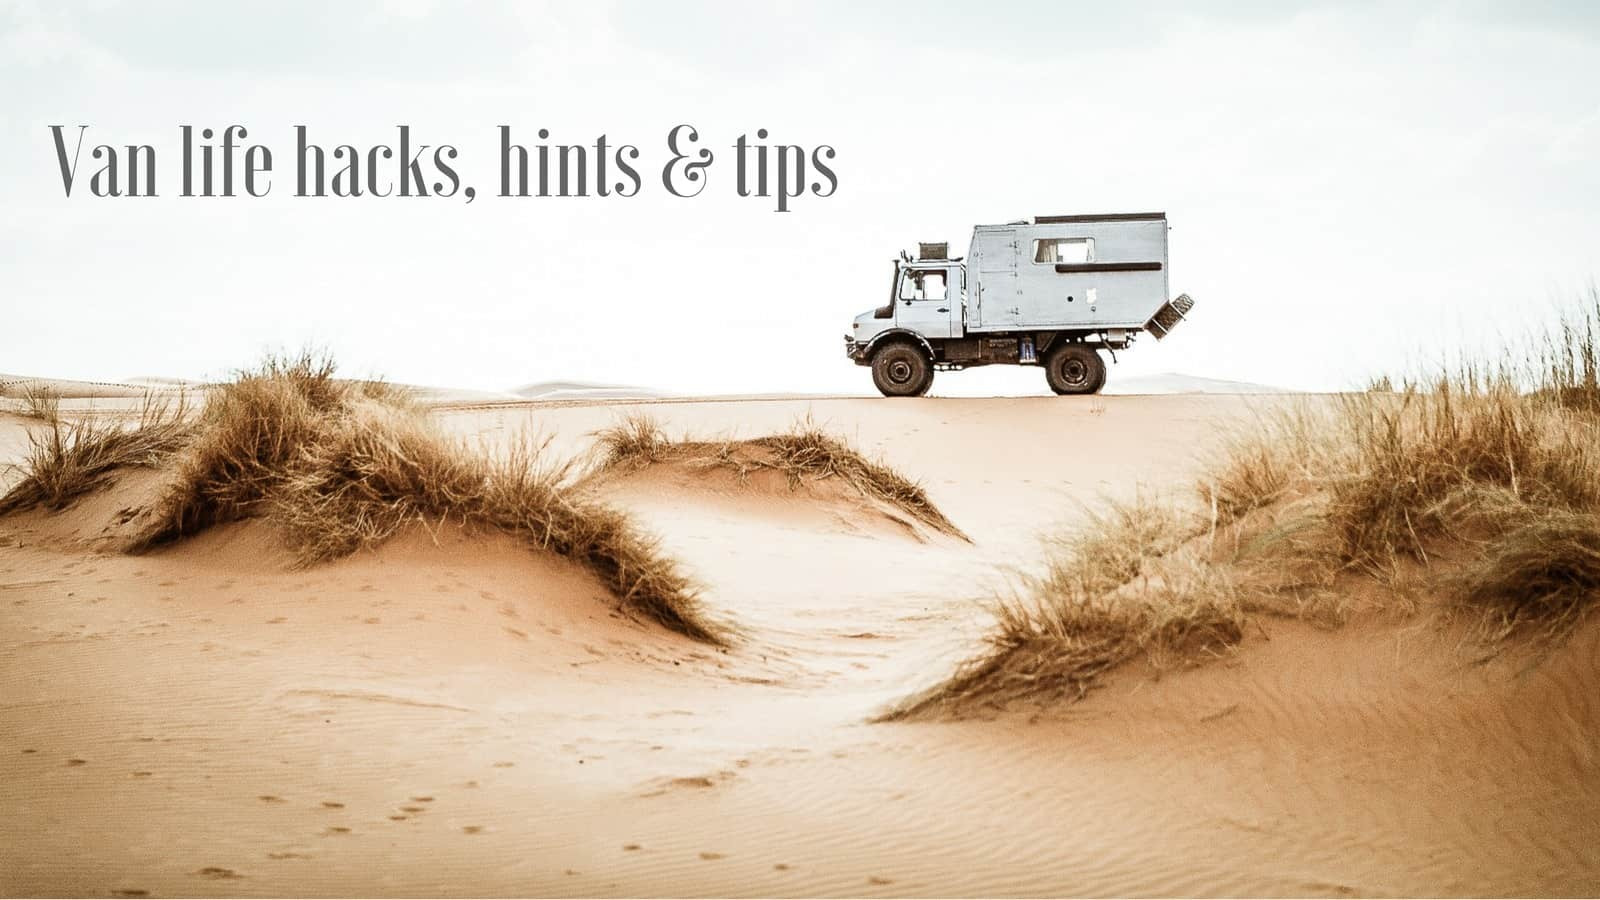 Mowgli Adventures Travel Resources Van life hacks, hints & tips